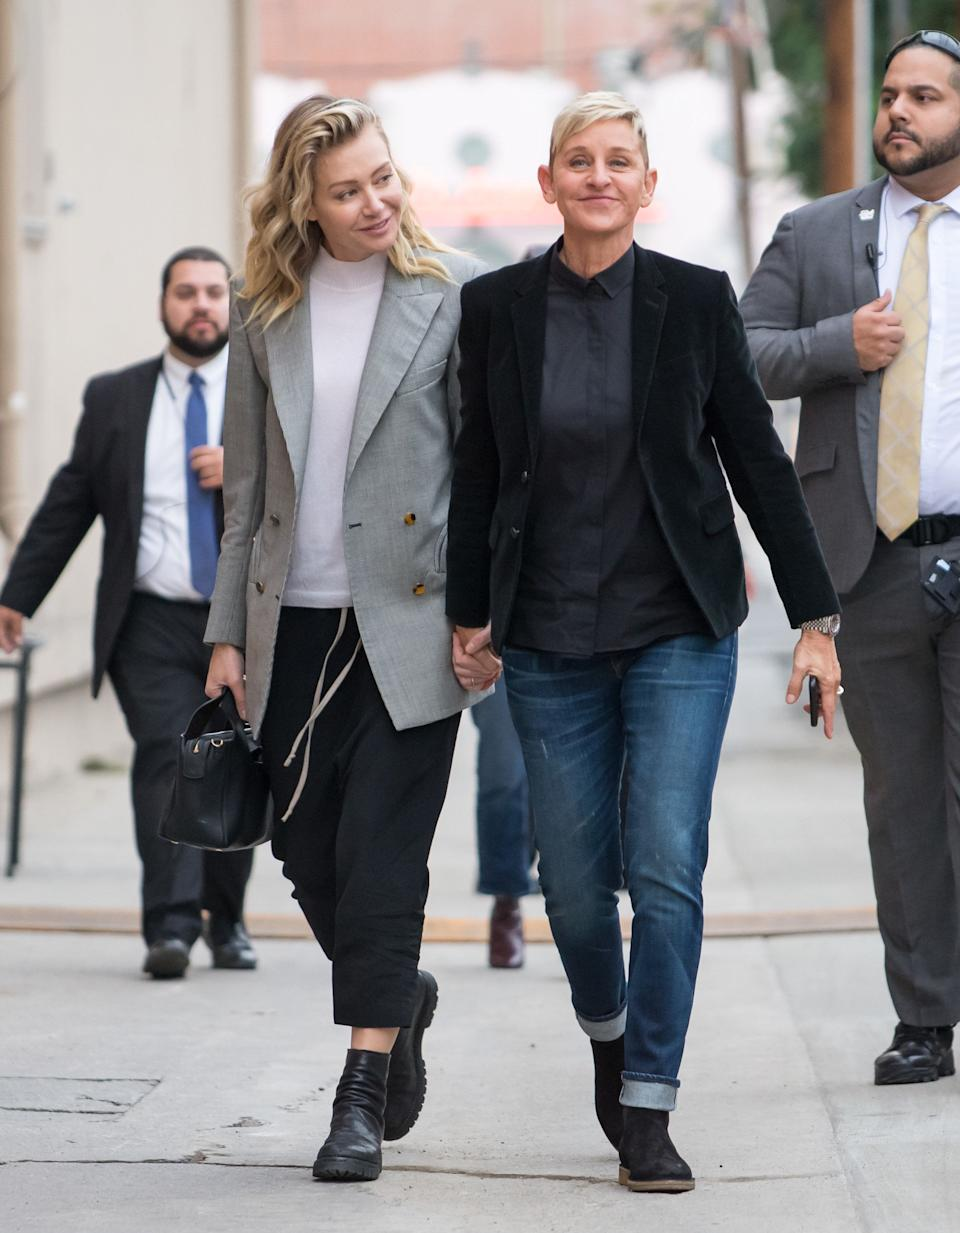 Ellen DeGeneres is the queen of suits, and clearly she's had an influence on wife Portia de Rossi's wardrobe. Here, the two are out and about in Los Angeles in December 2018, wearing coordinating tailored ensembles.